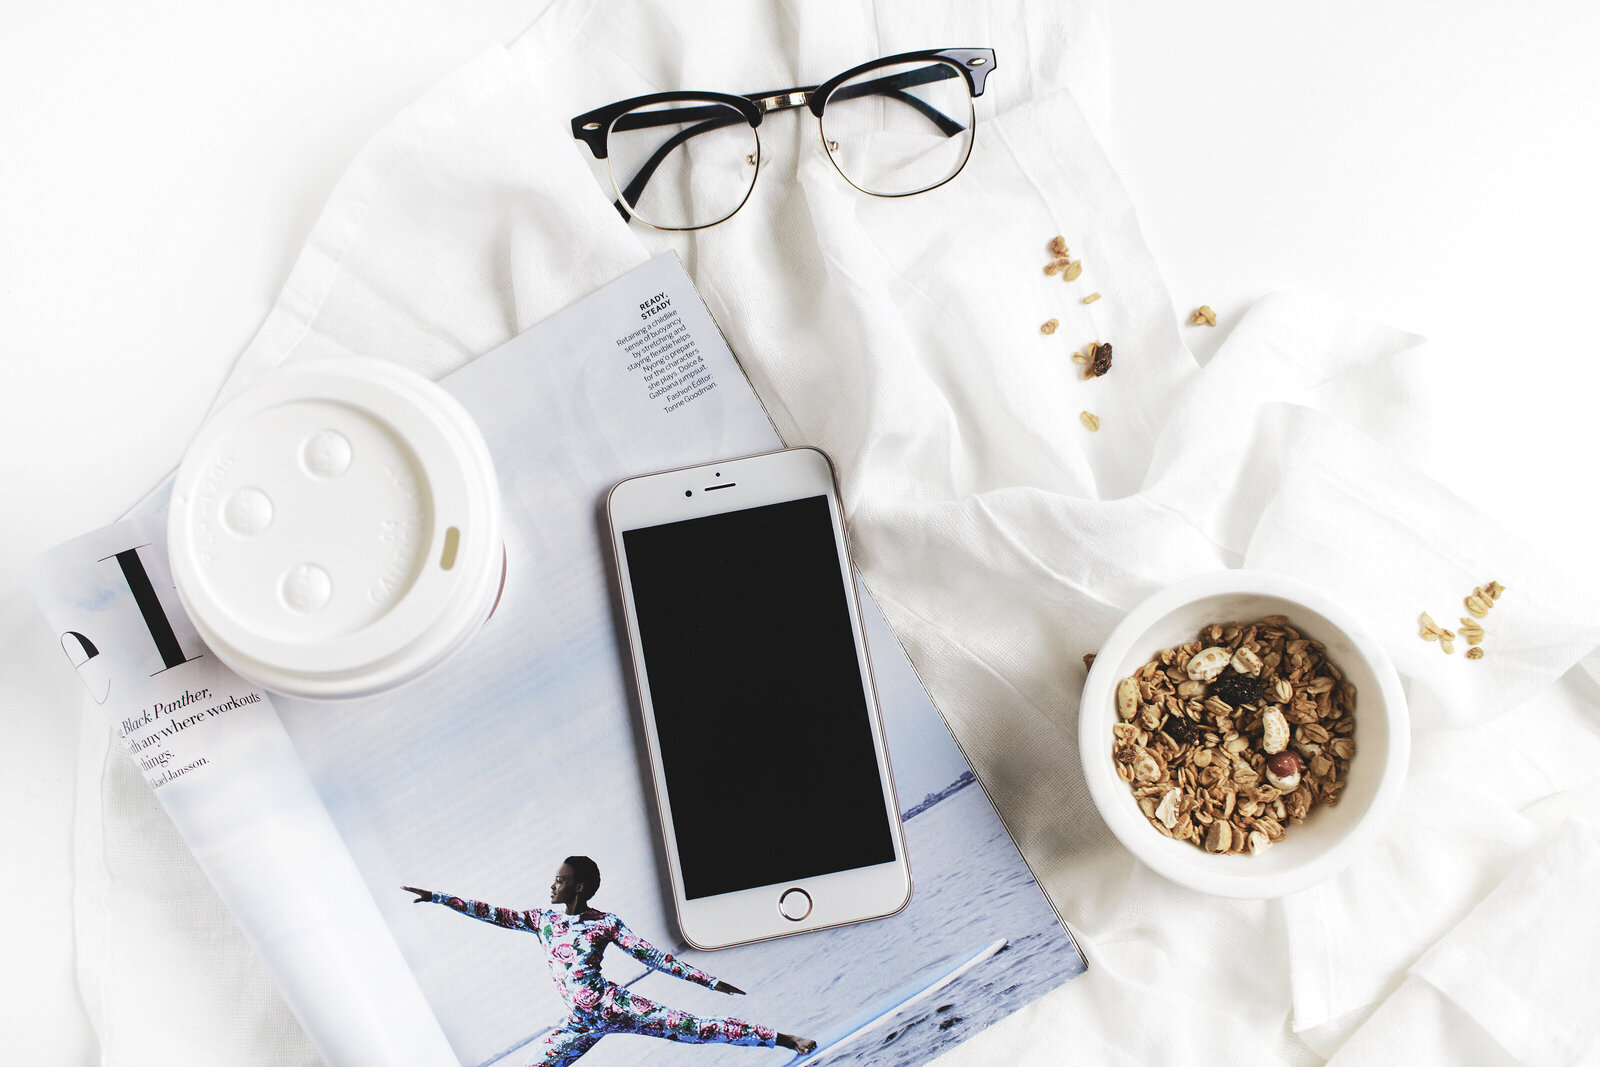 coffee, iphone, glasses, small business owner workspace